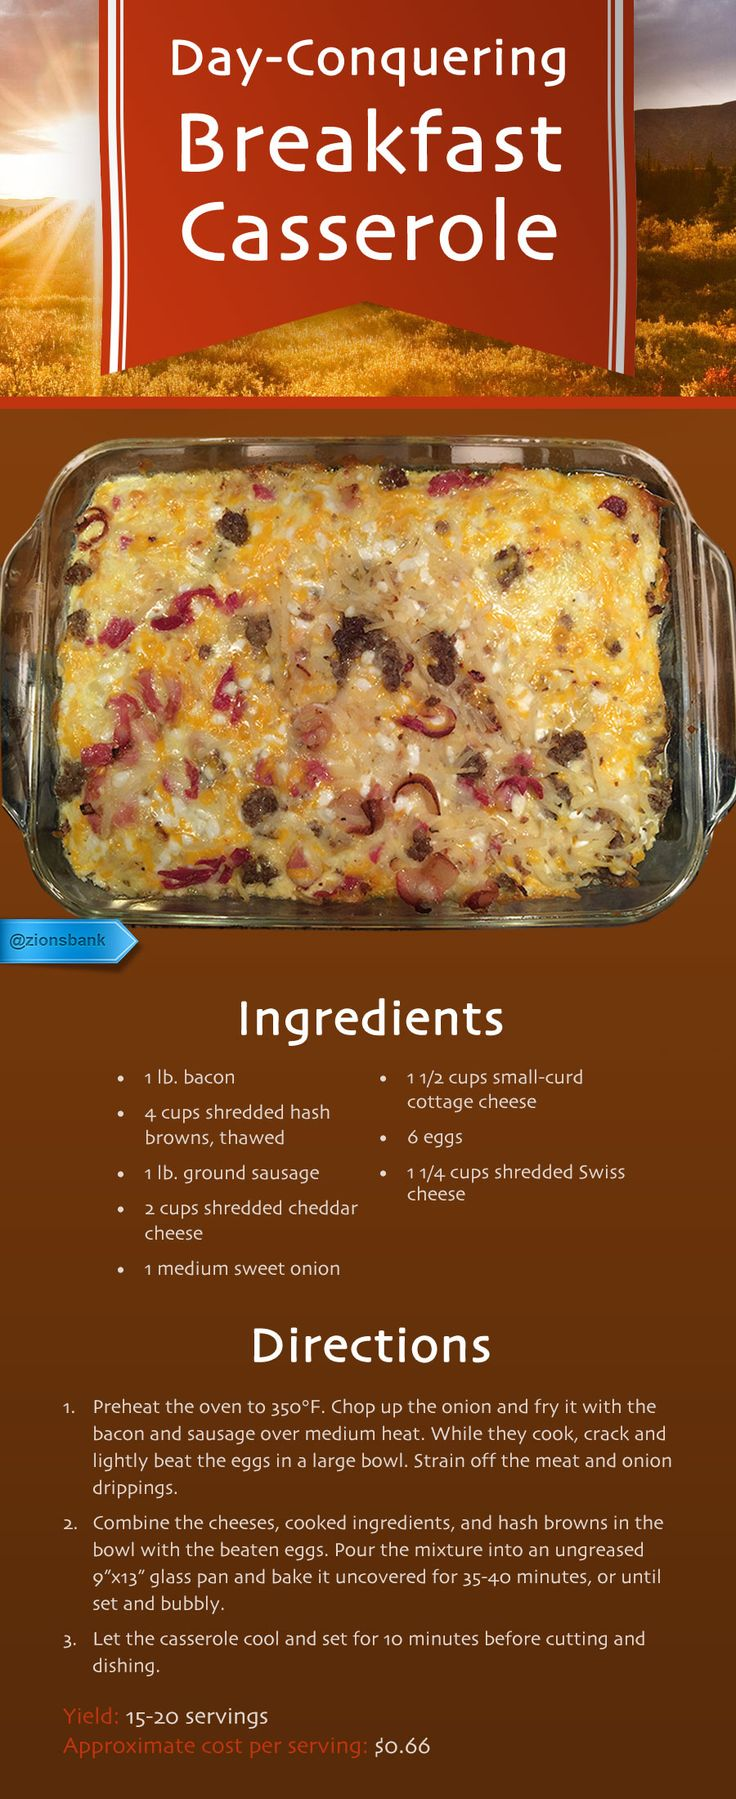 Get energy to tackle a busy day with all the best breakfast foods in this gooey, layered casserole.   @jesslmt3  So leave out the cottage cheese and this sounds good.